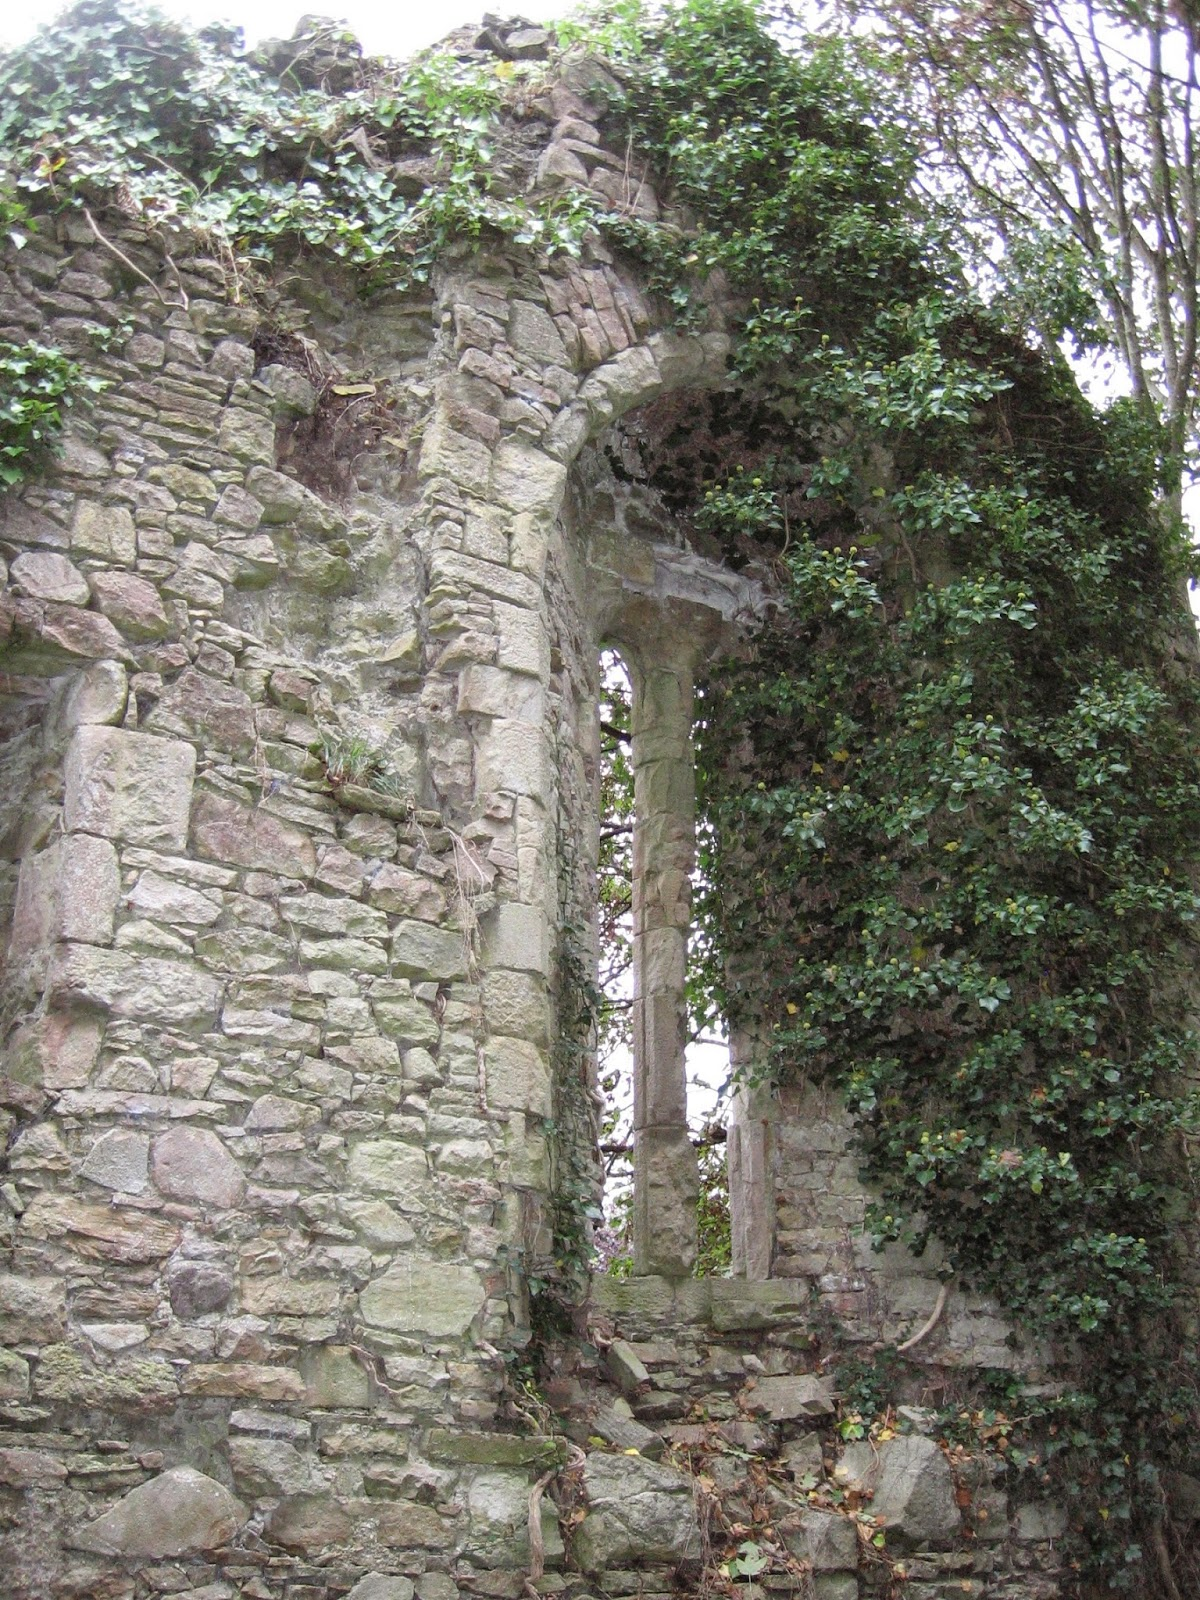 Catholic church ruins next to graveyard at Castletown Conyers in County Limerick Ireland